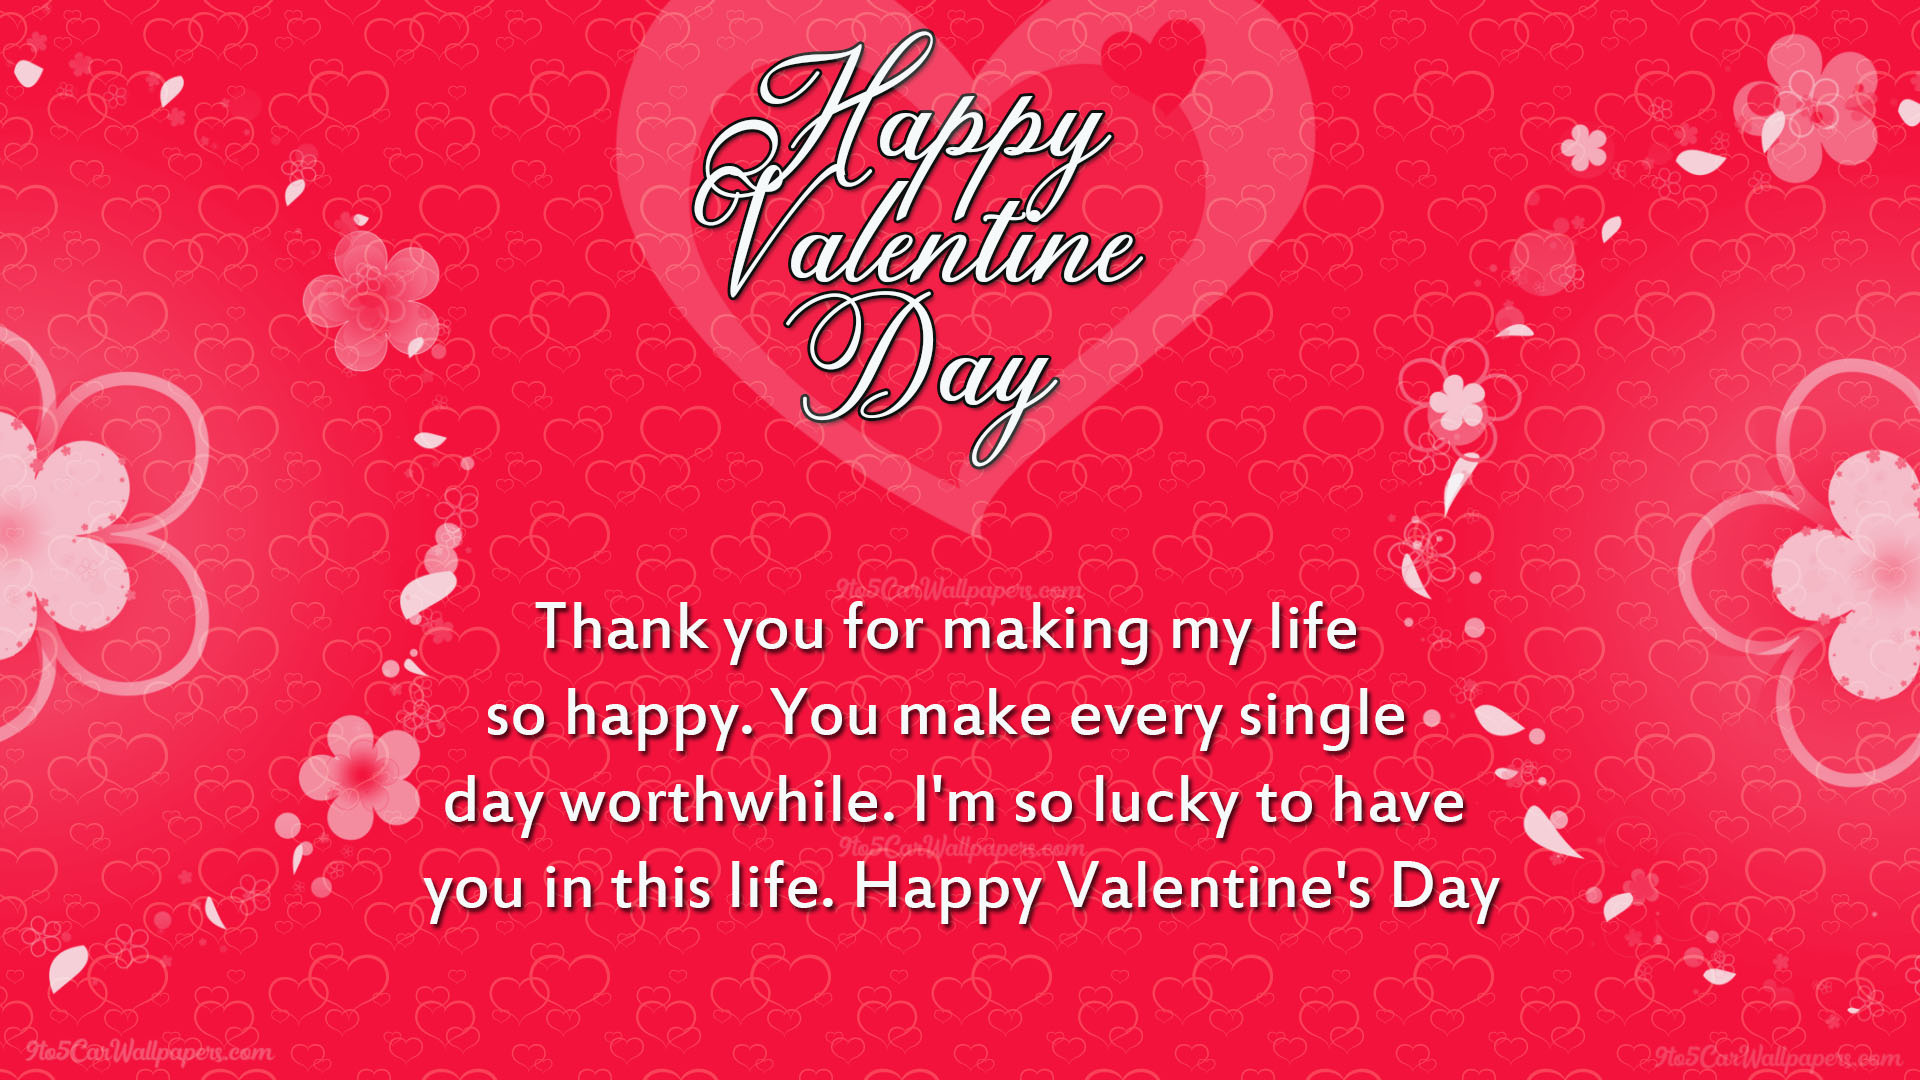 happy-valentine-day-card